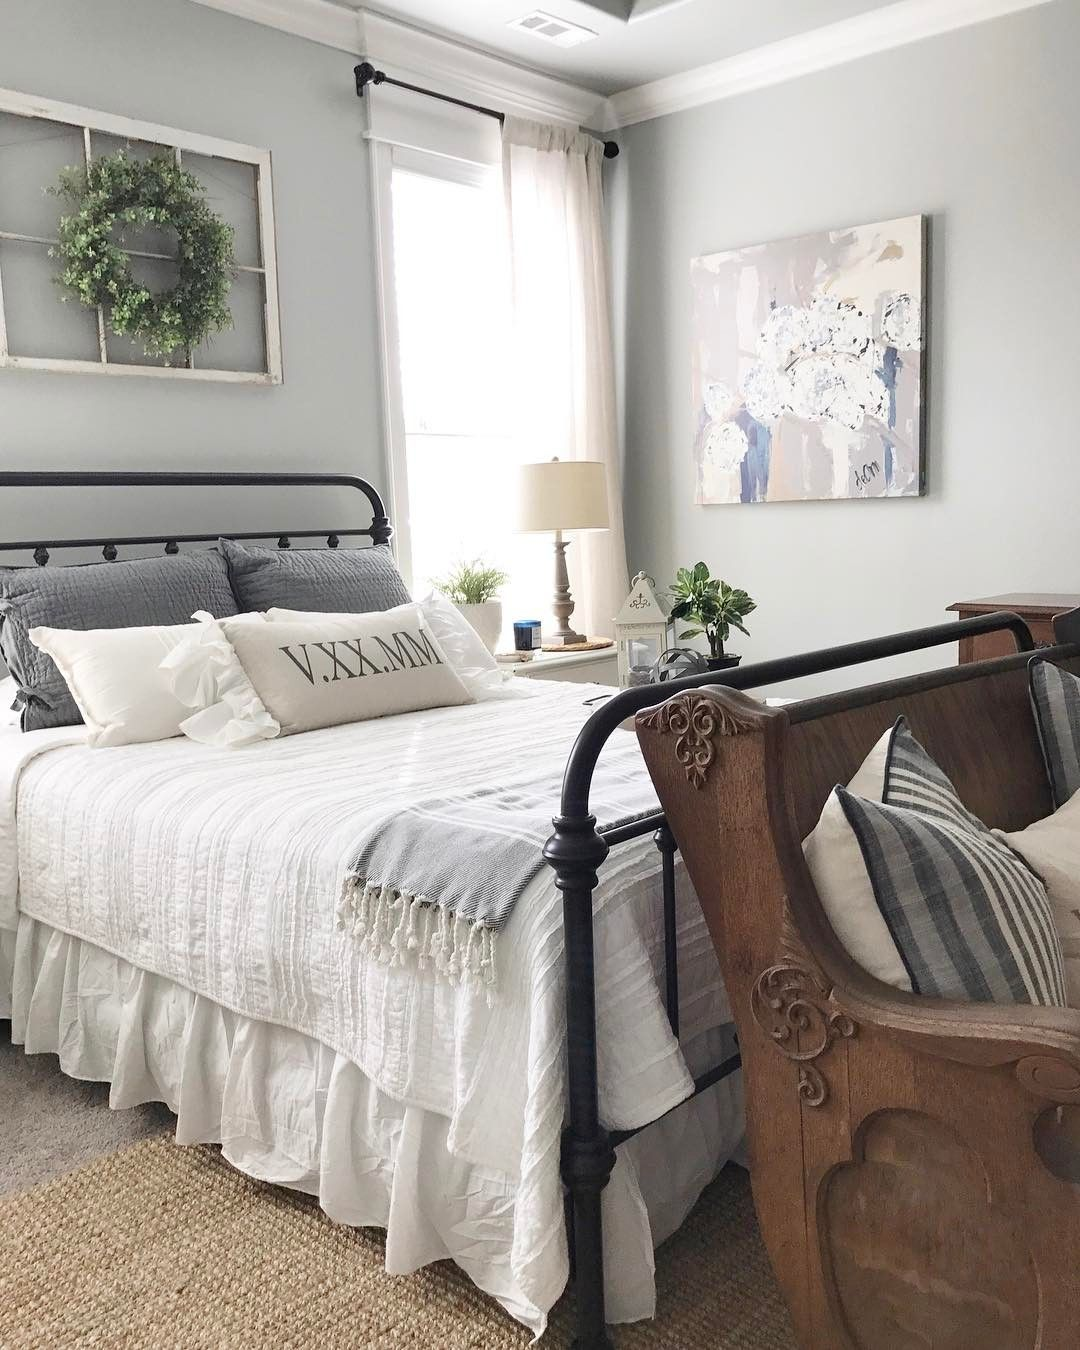 Joanna gaines master bedroom bedding   Likes  Comments  alicia our vintage nest ourvintagenest